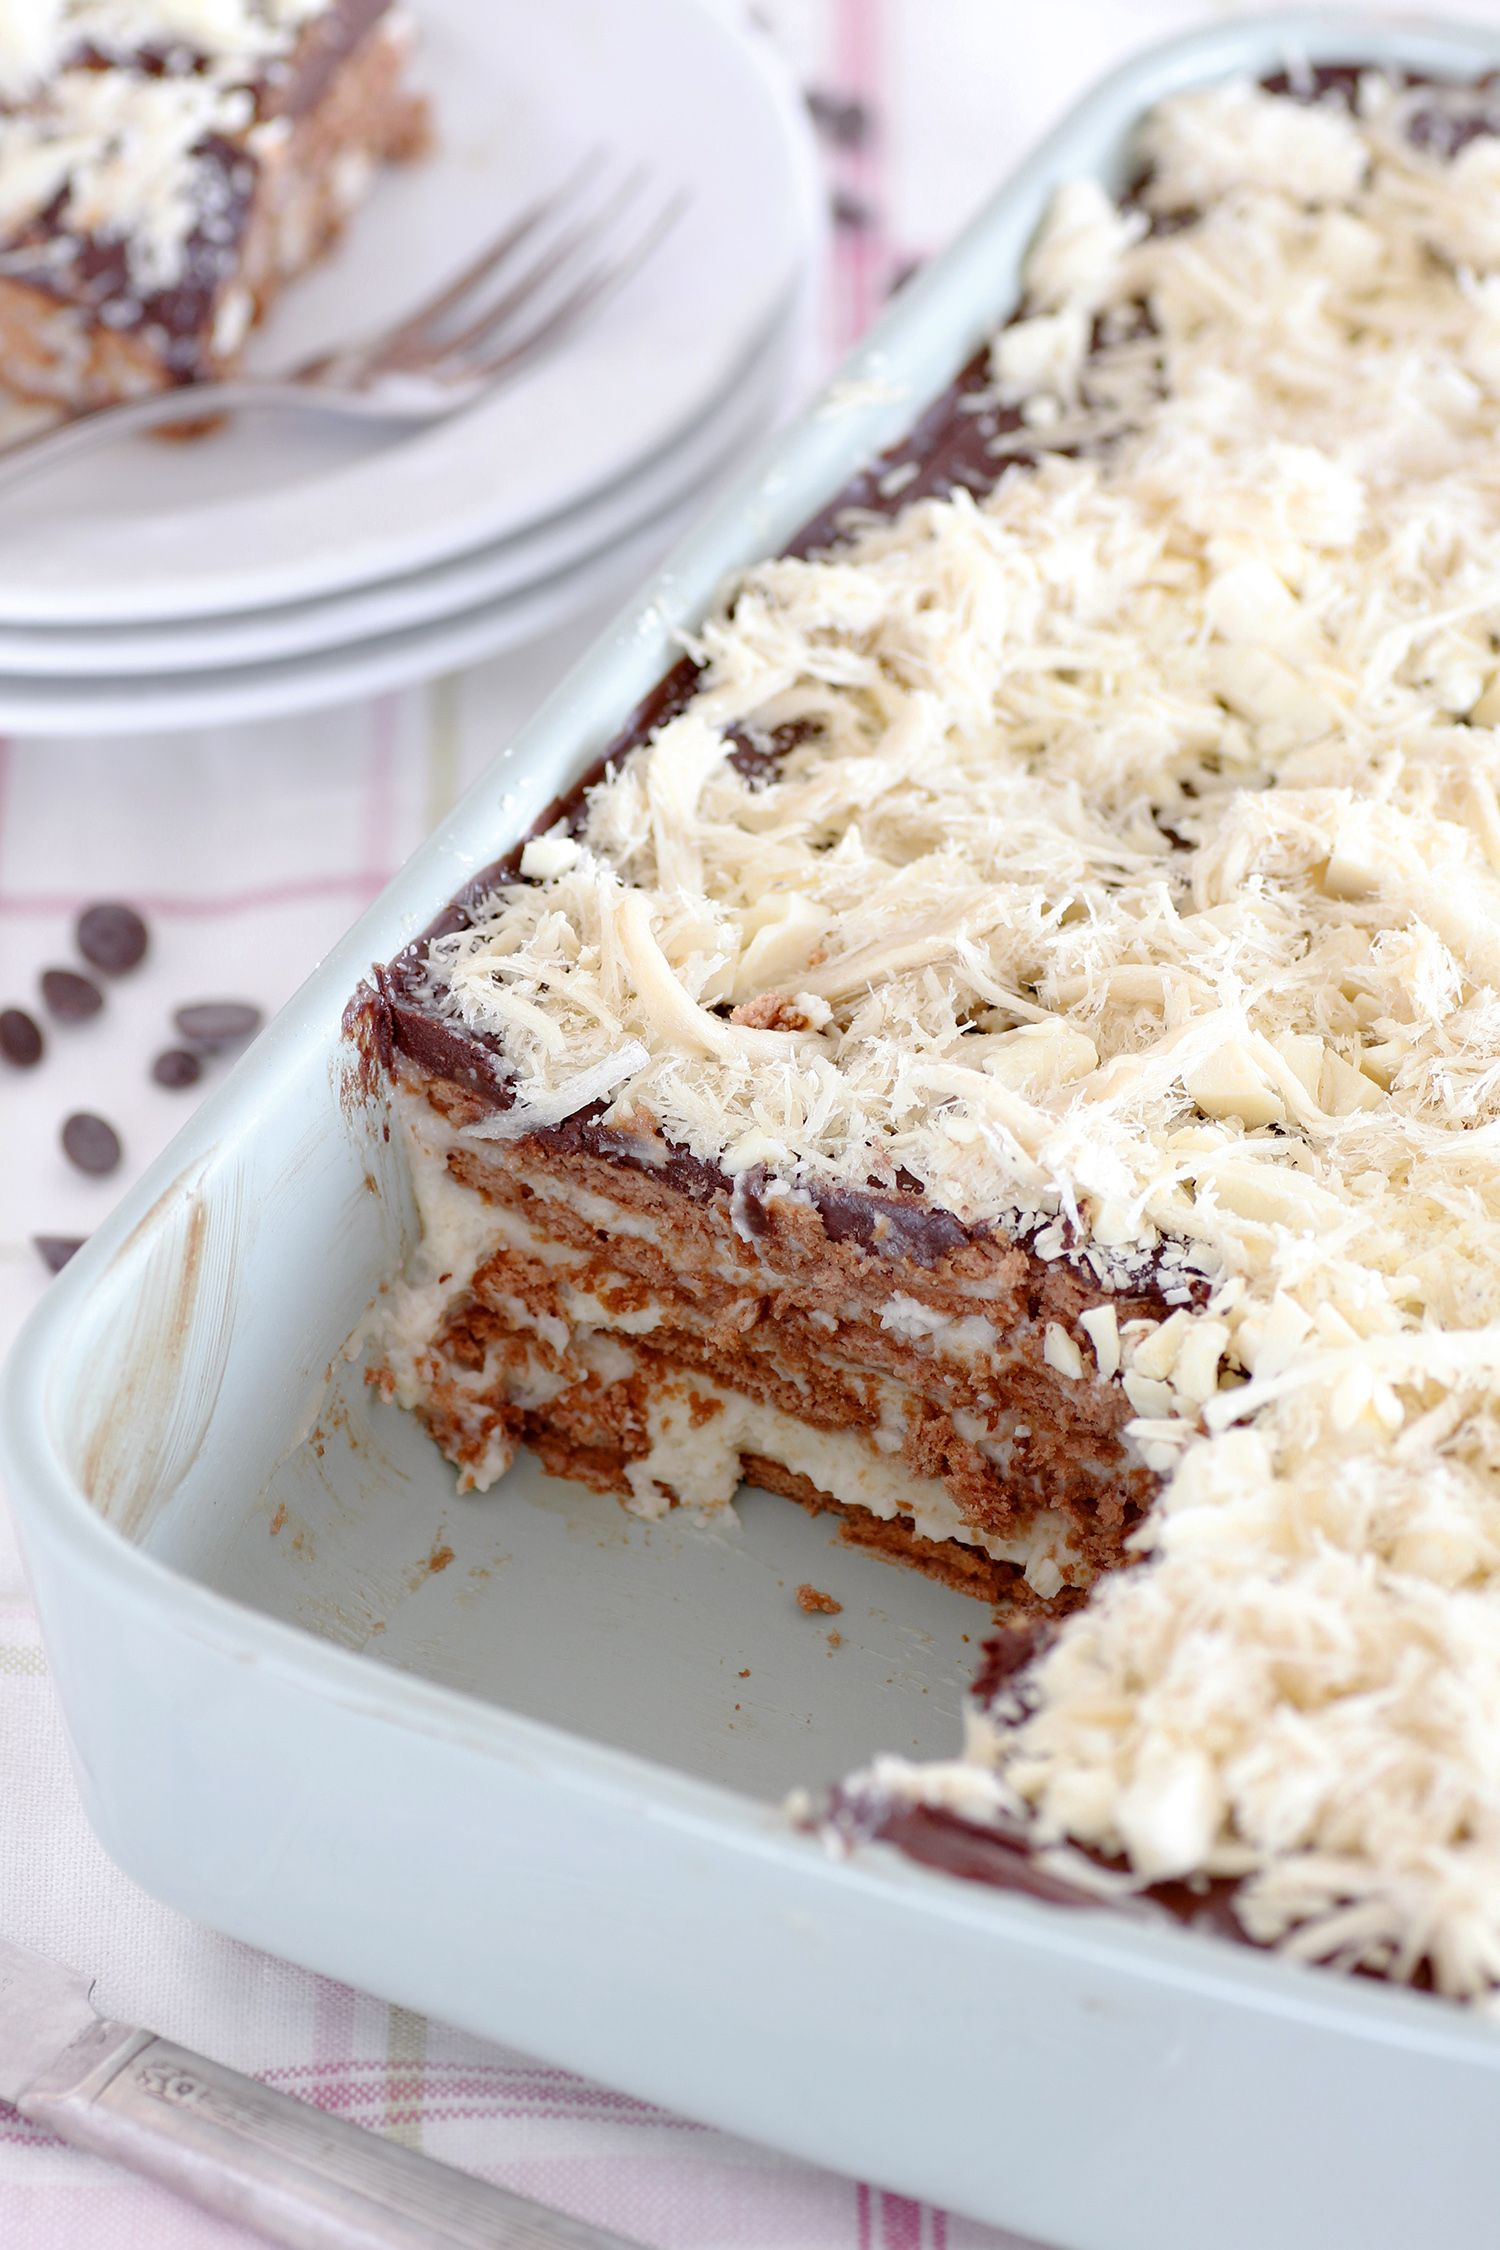 Tahini Chocolate Icebox Cake